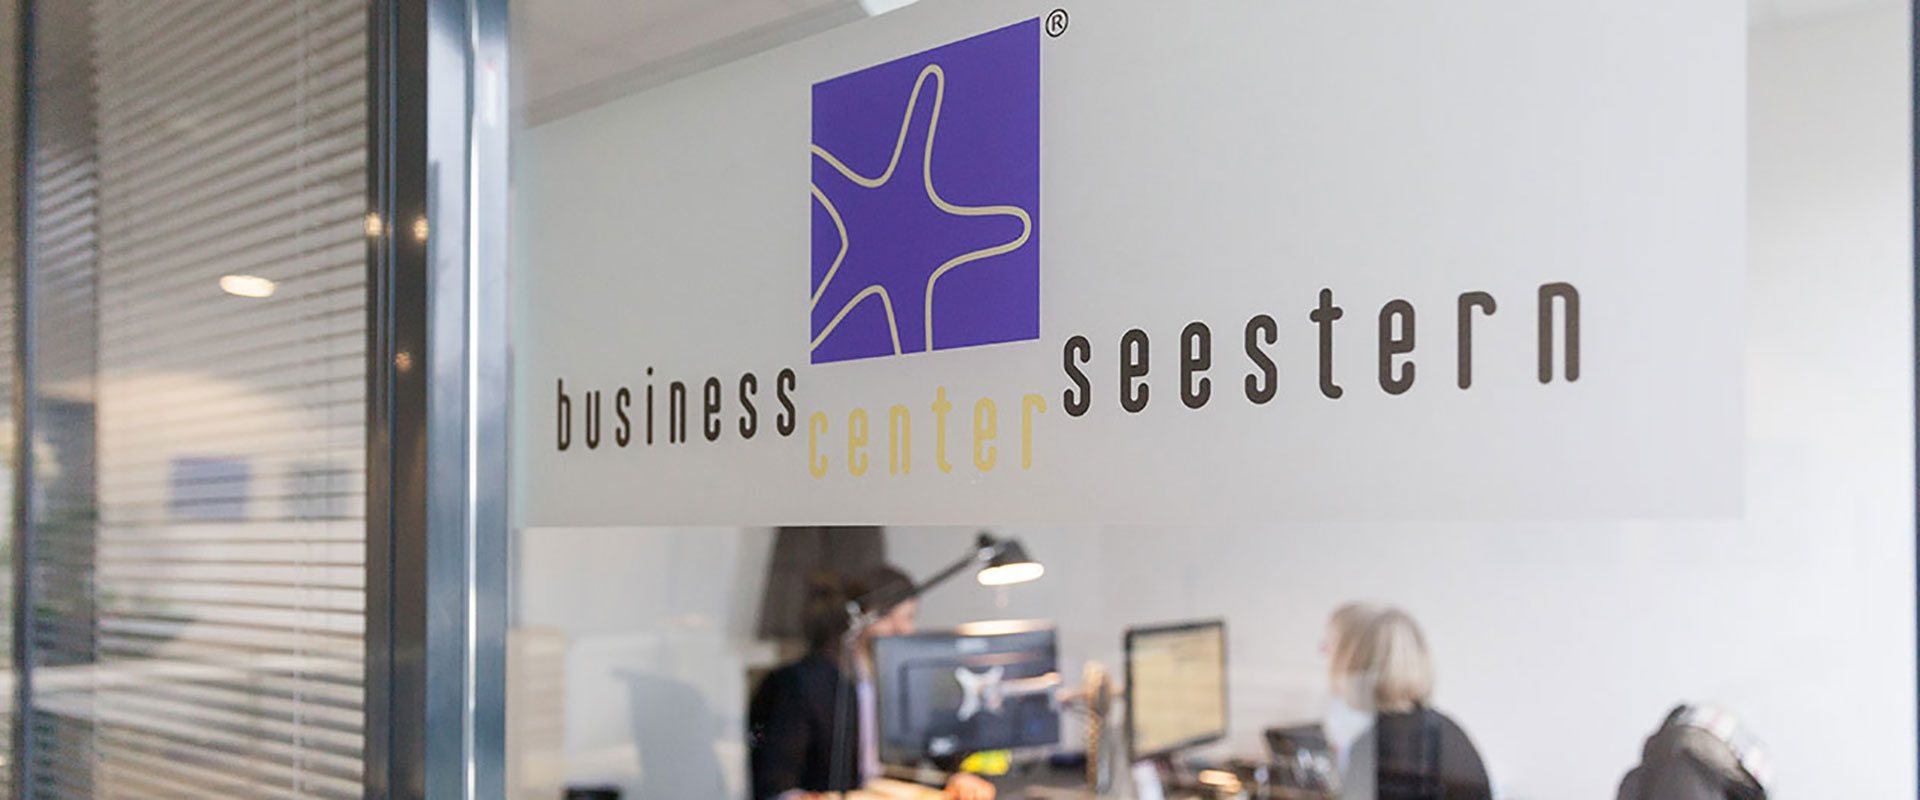 Logo des Business Center Seestern an Fenster im Büro